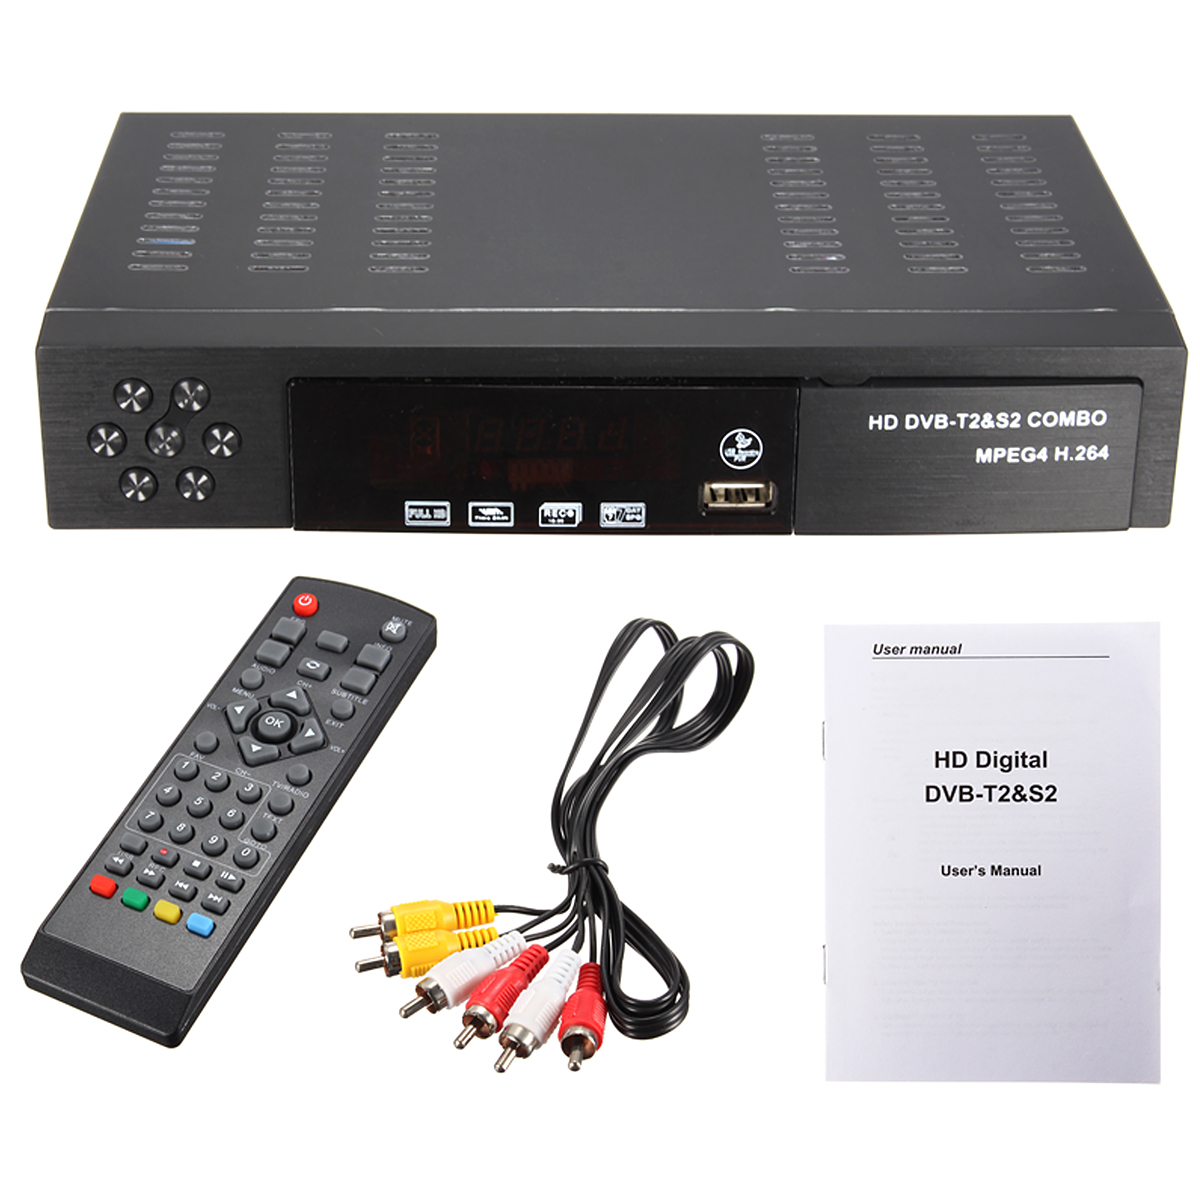 full hd 1080p dvb t2 s2 video broadcasting satellite receiver set up box tv hdtv uk lazada. Black Bedroom Furniture Sets. Home Design Ideas